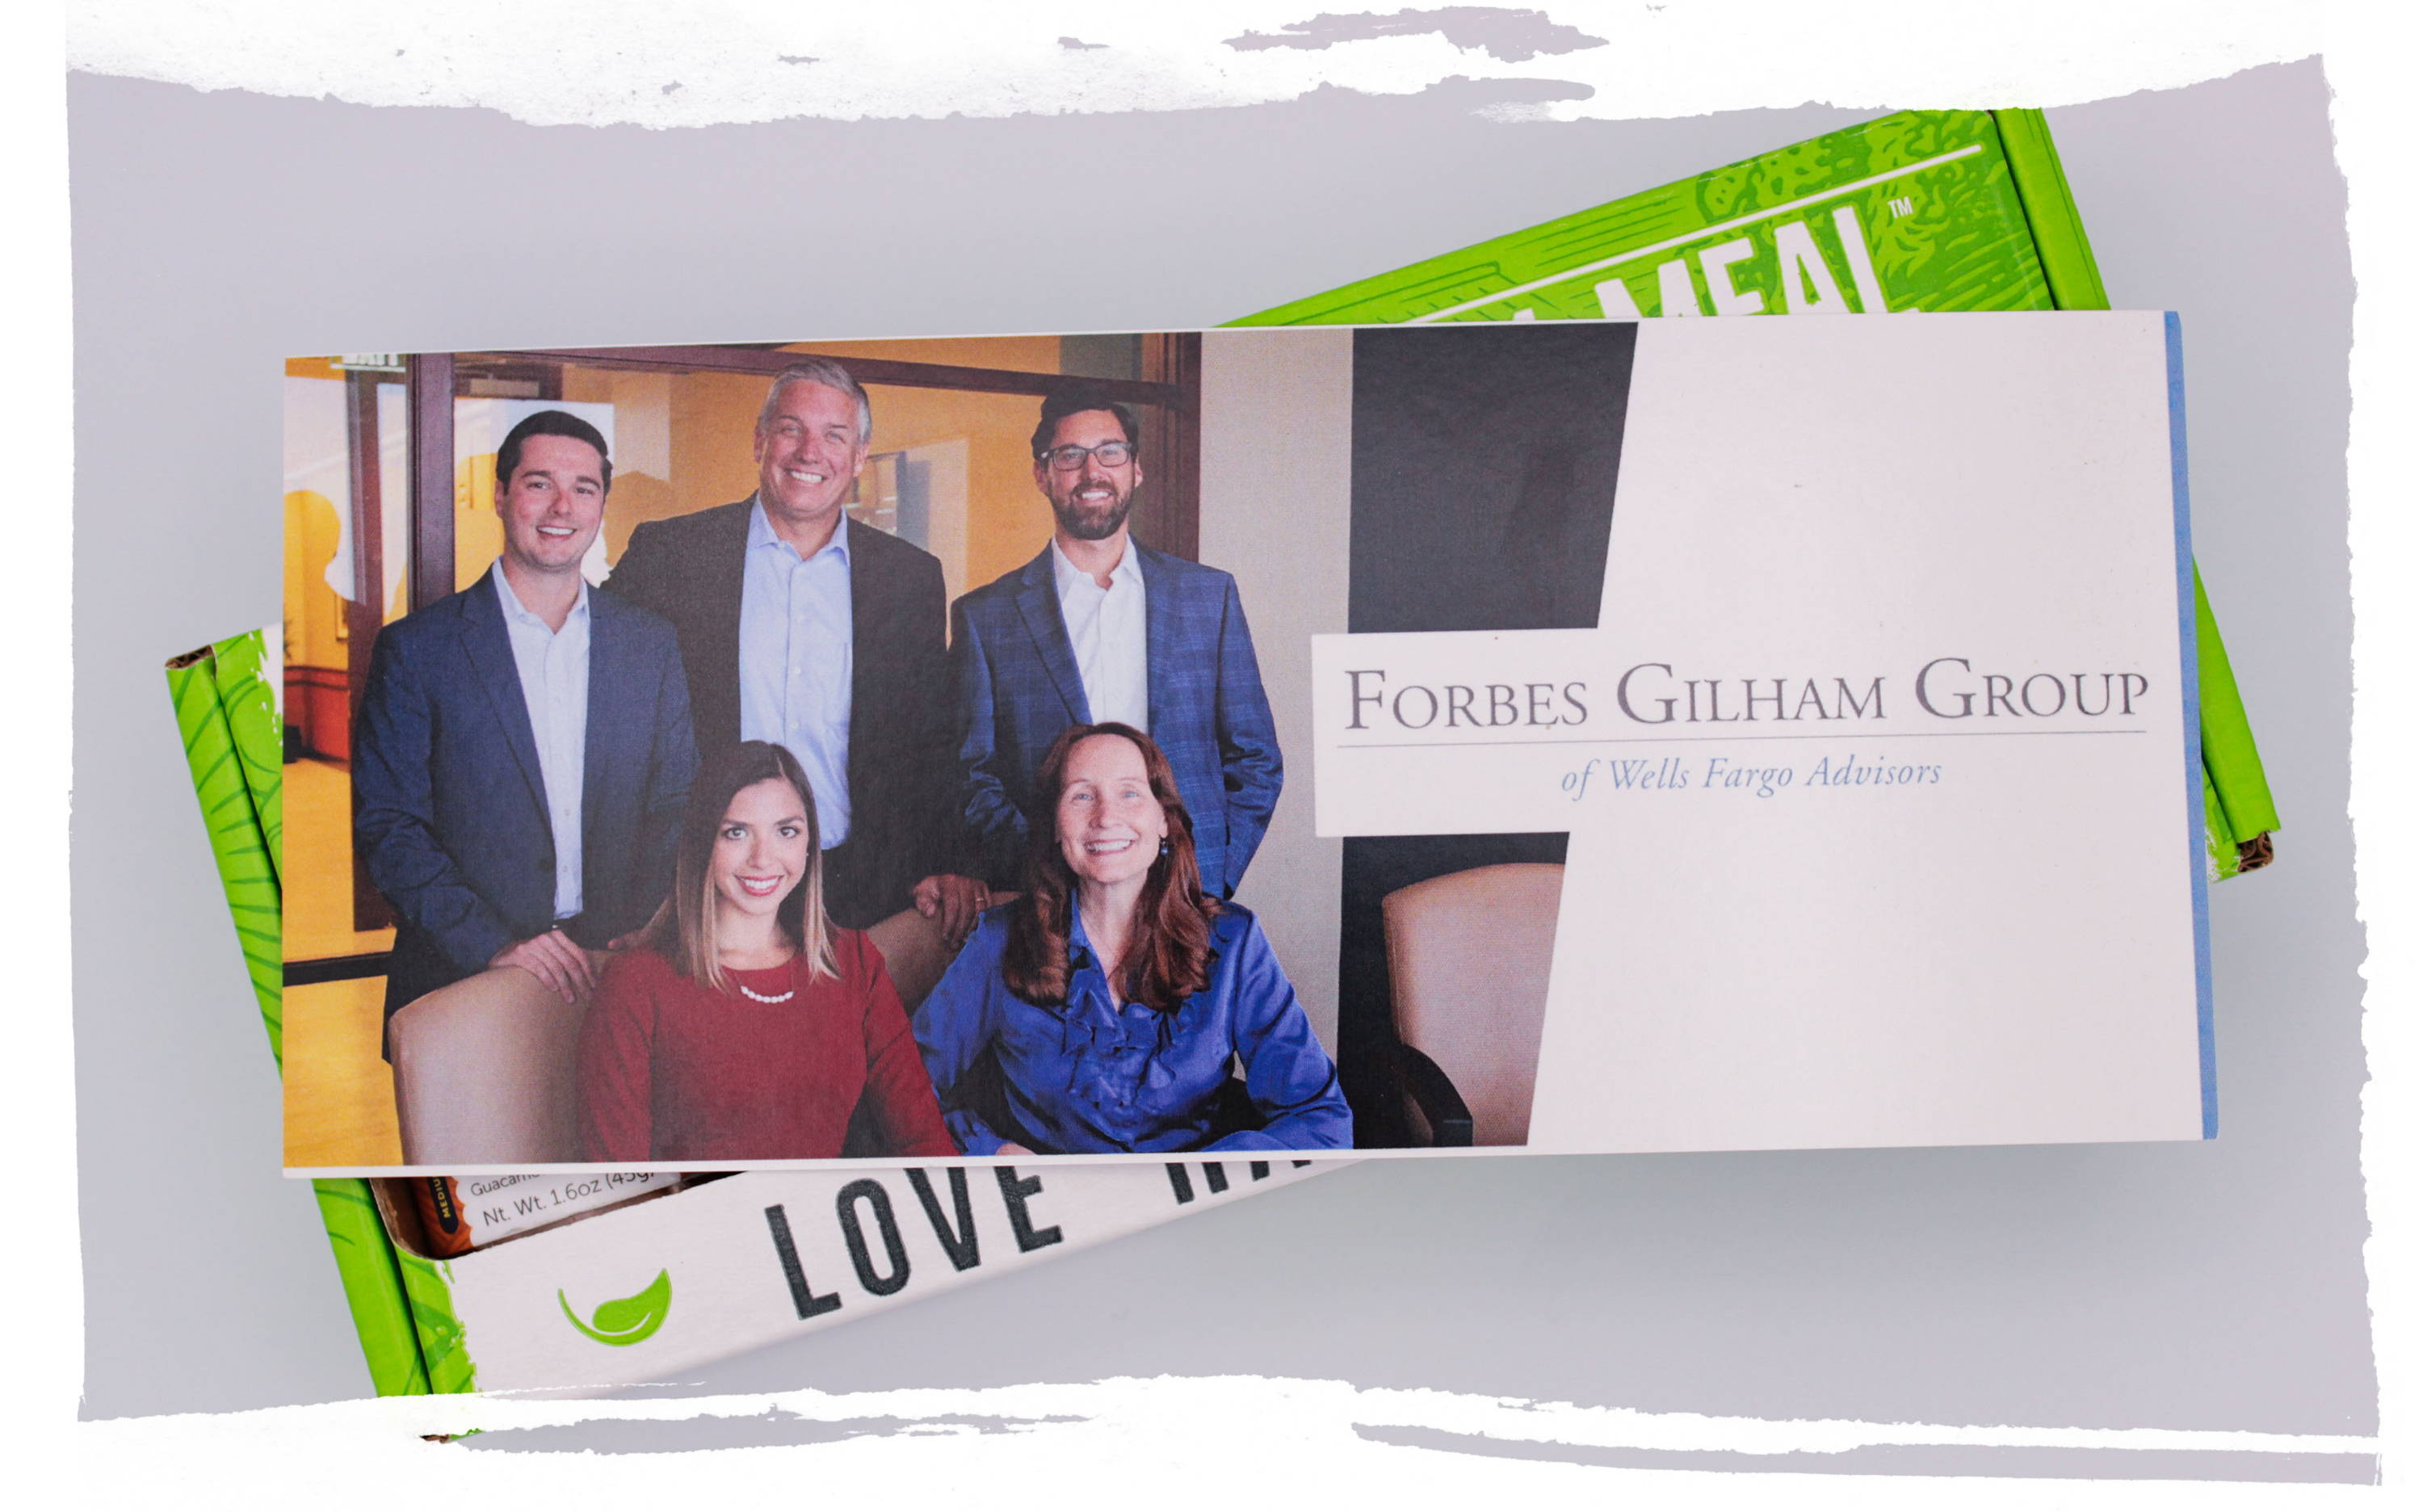 Customized Corporate Gifting Forbes Gillham Group Insert Example